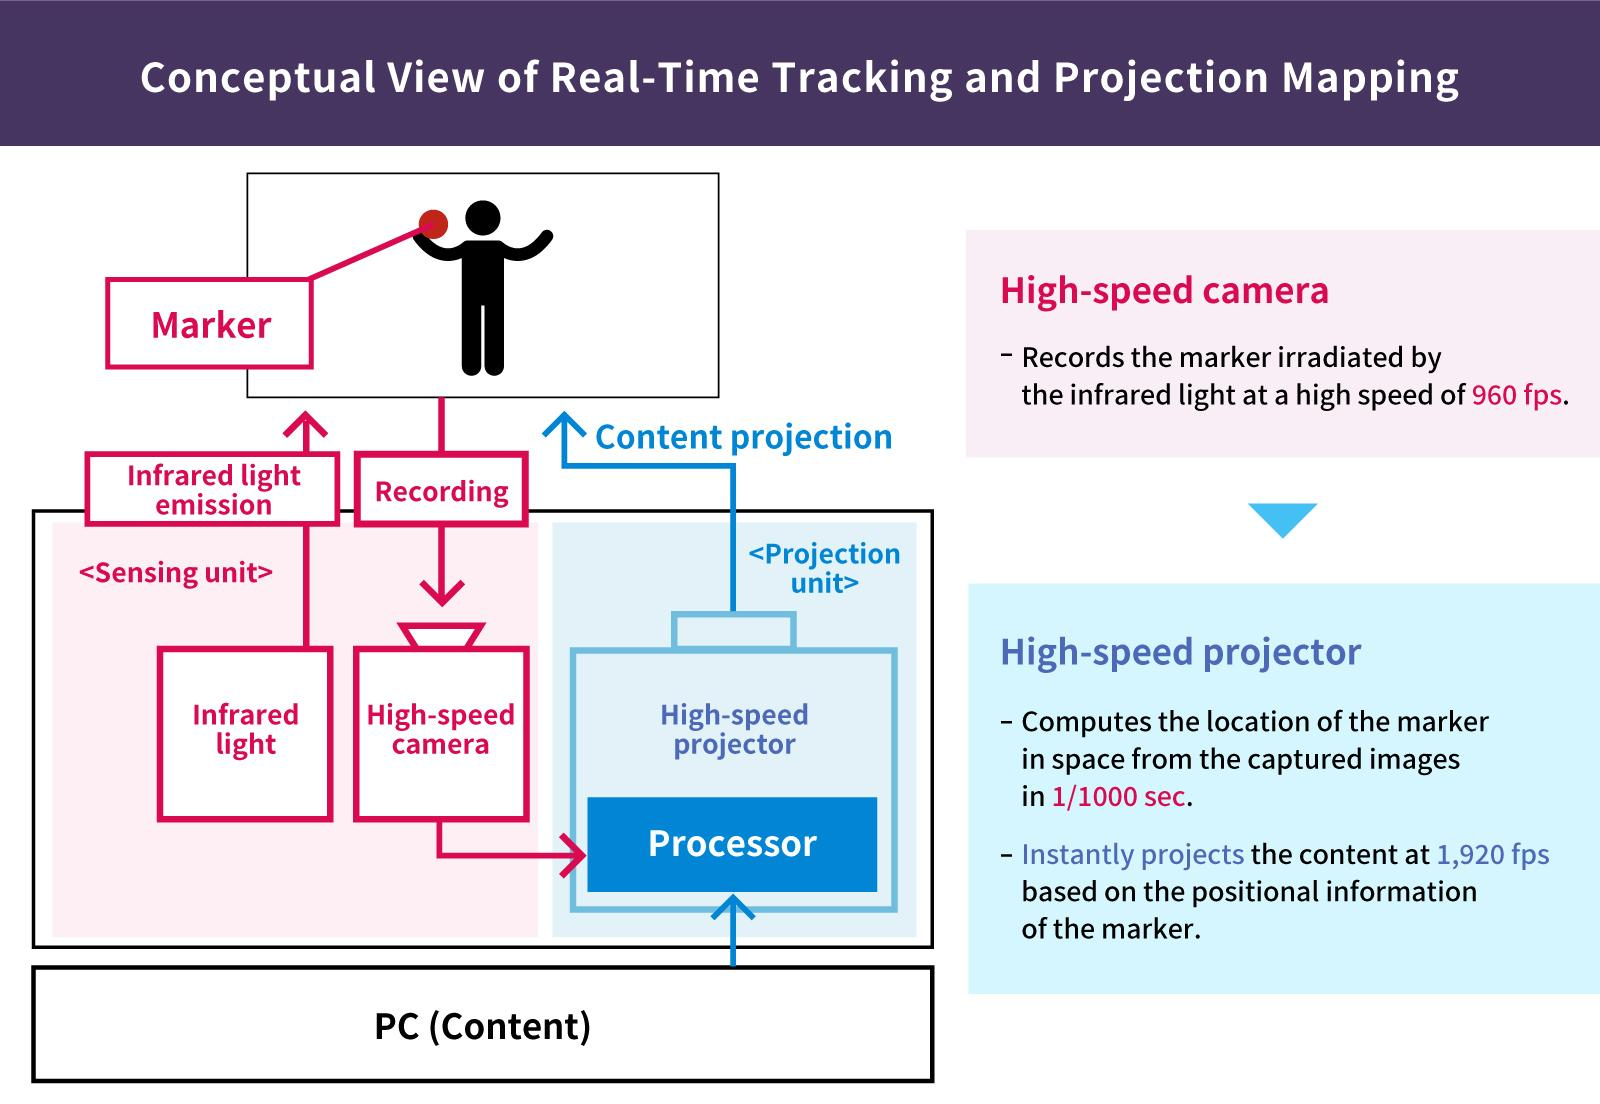 image: Conceptual View of Real-Time Tracking and Projection Mapping